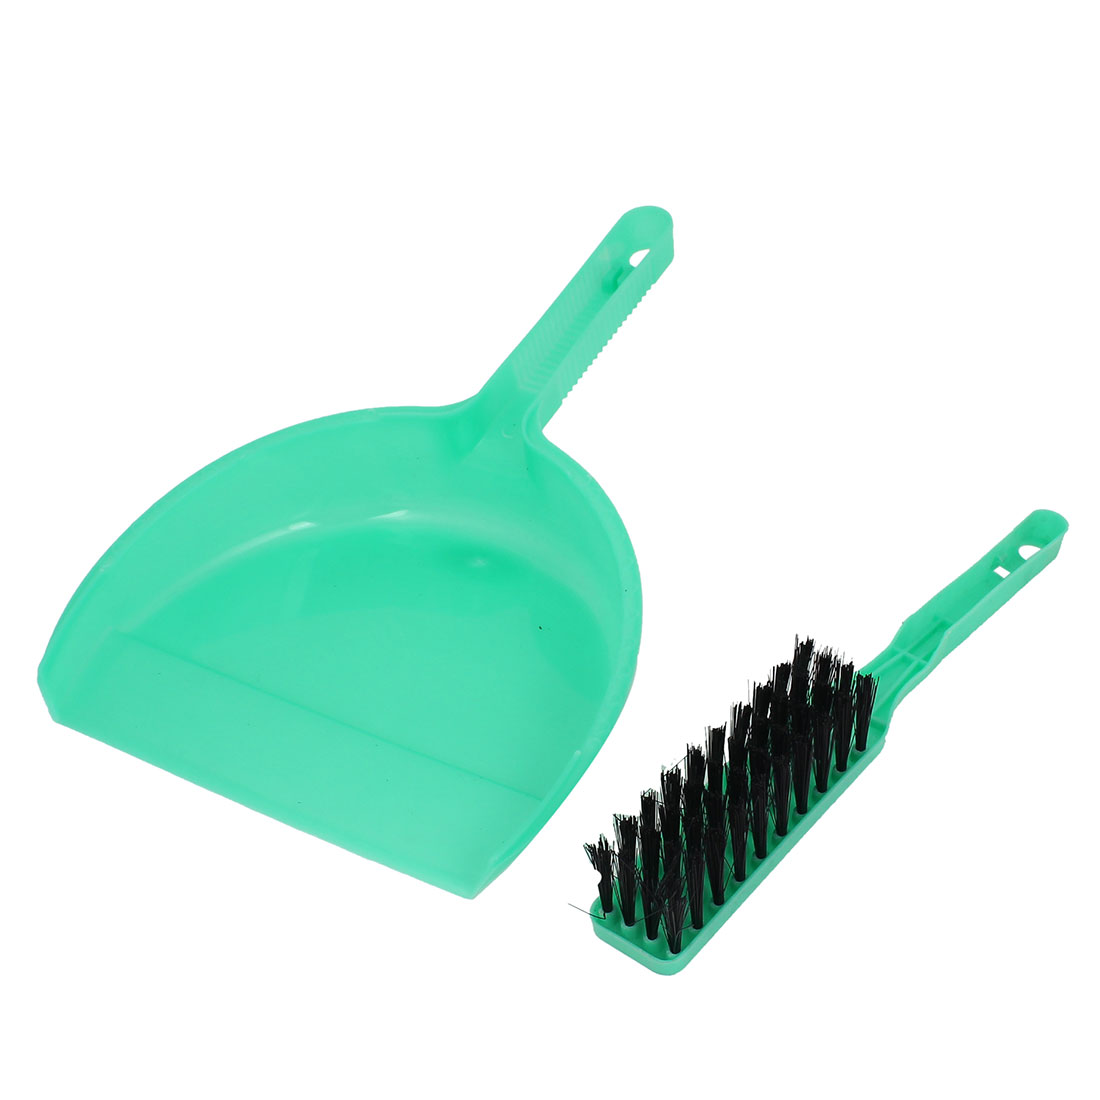 2 in 1 Plastic Nonslip Handle Mini Pet Whisk Brush Broom Dustpan Green Clean Set